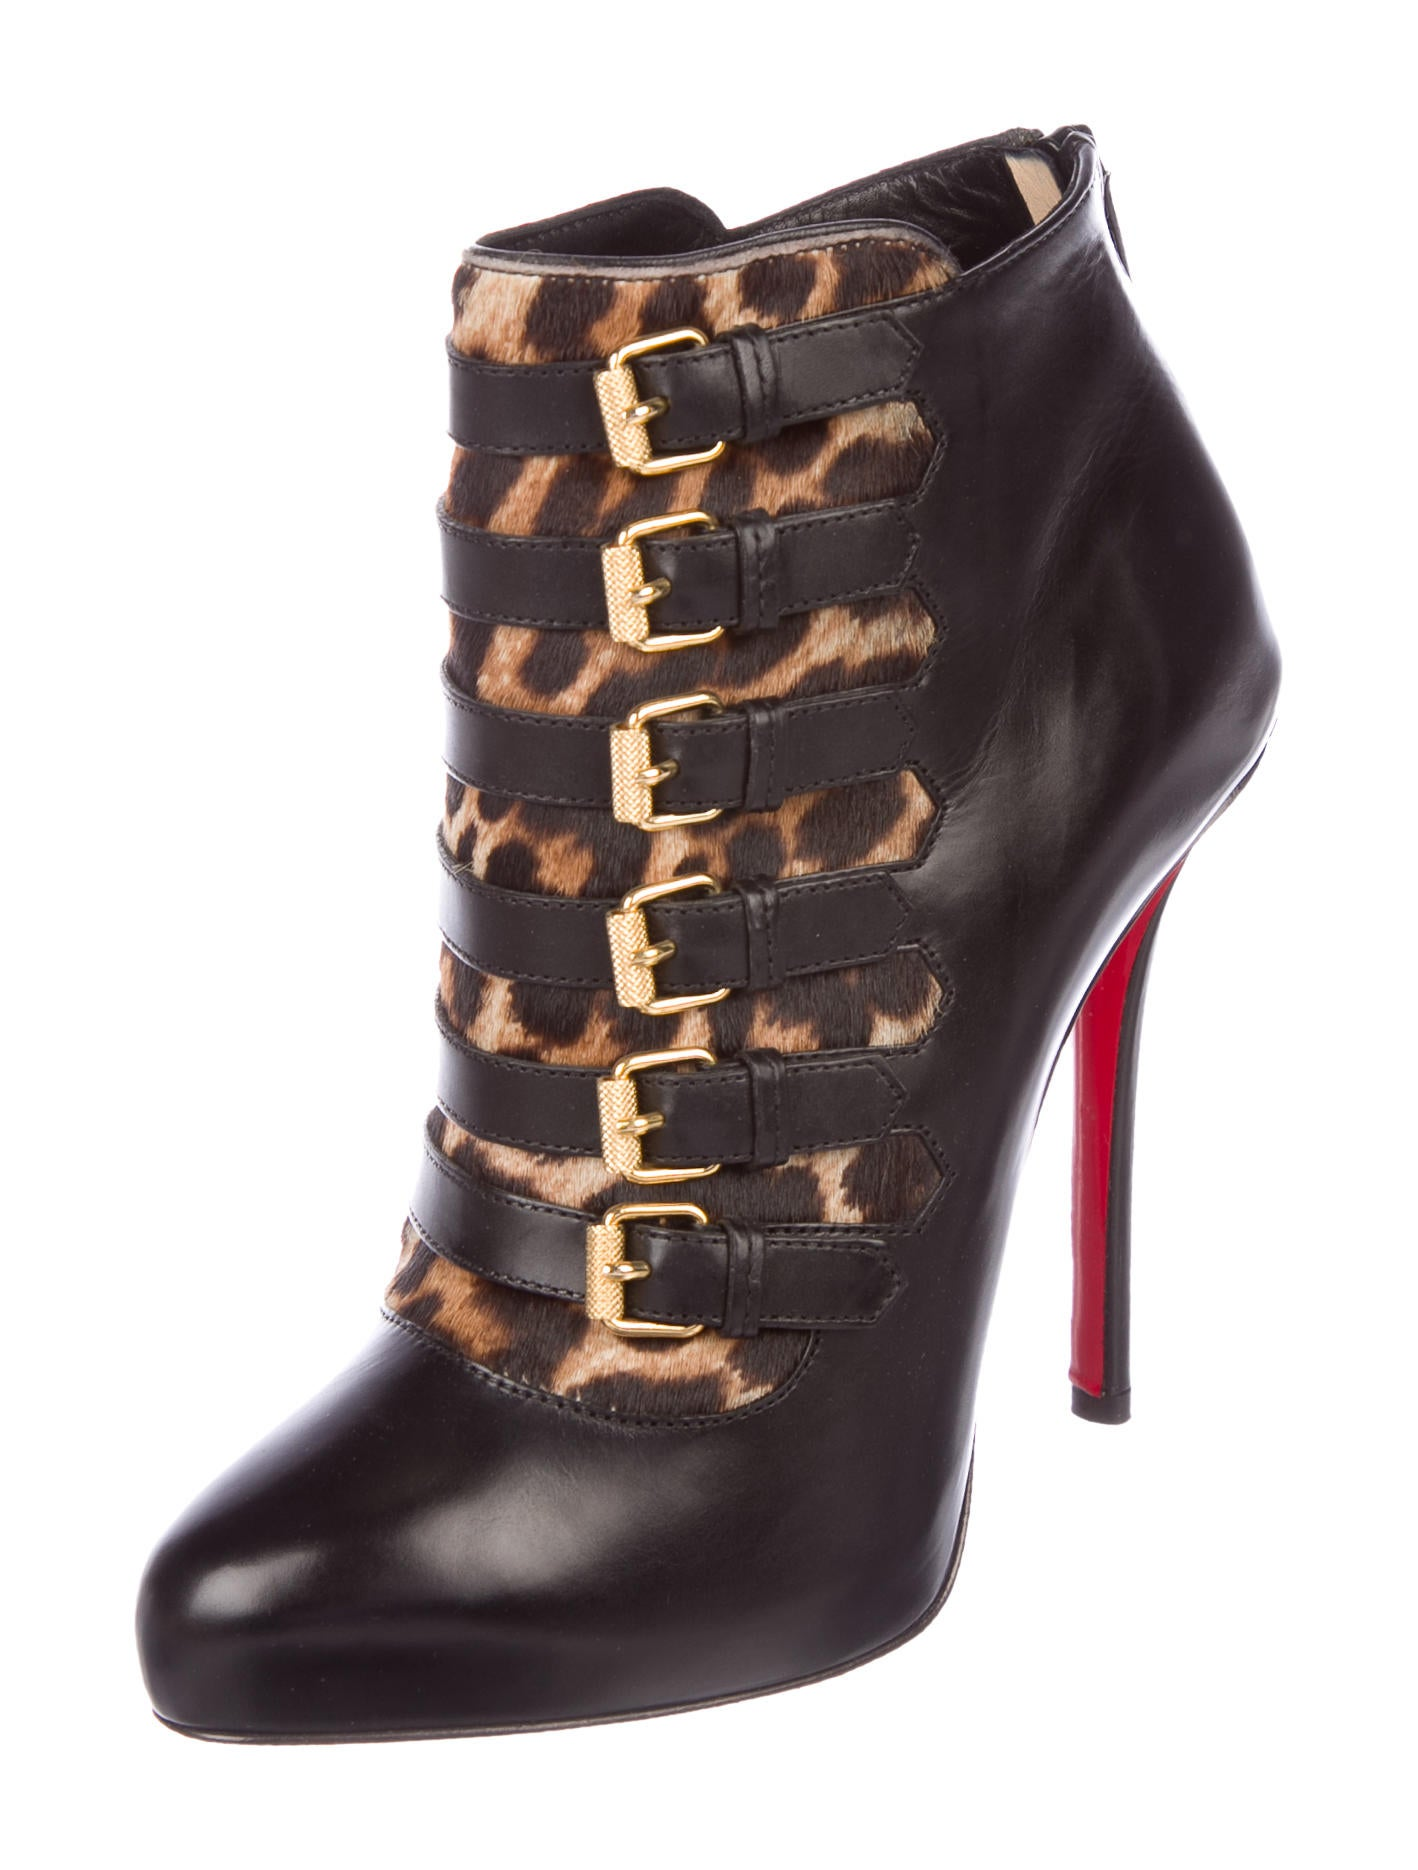 buy cheap low shipping fee Christian Louboutin Attroupee Buckle Booties w/ Tags discount free shipping cheap for sale cheap sale finishline PODyOma9i